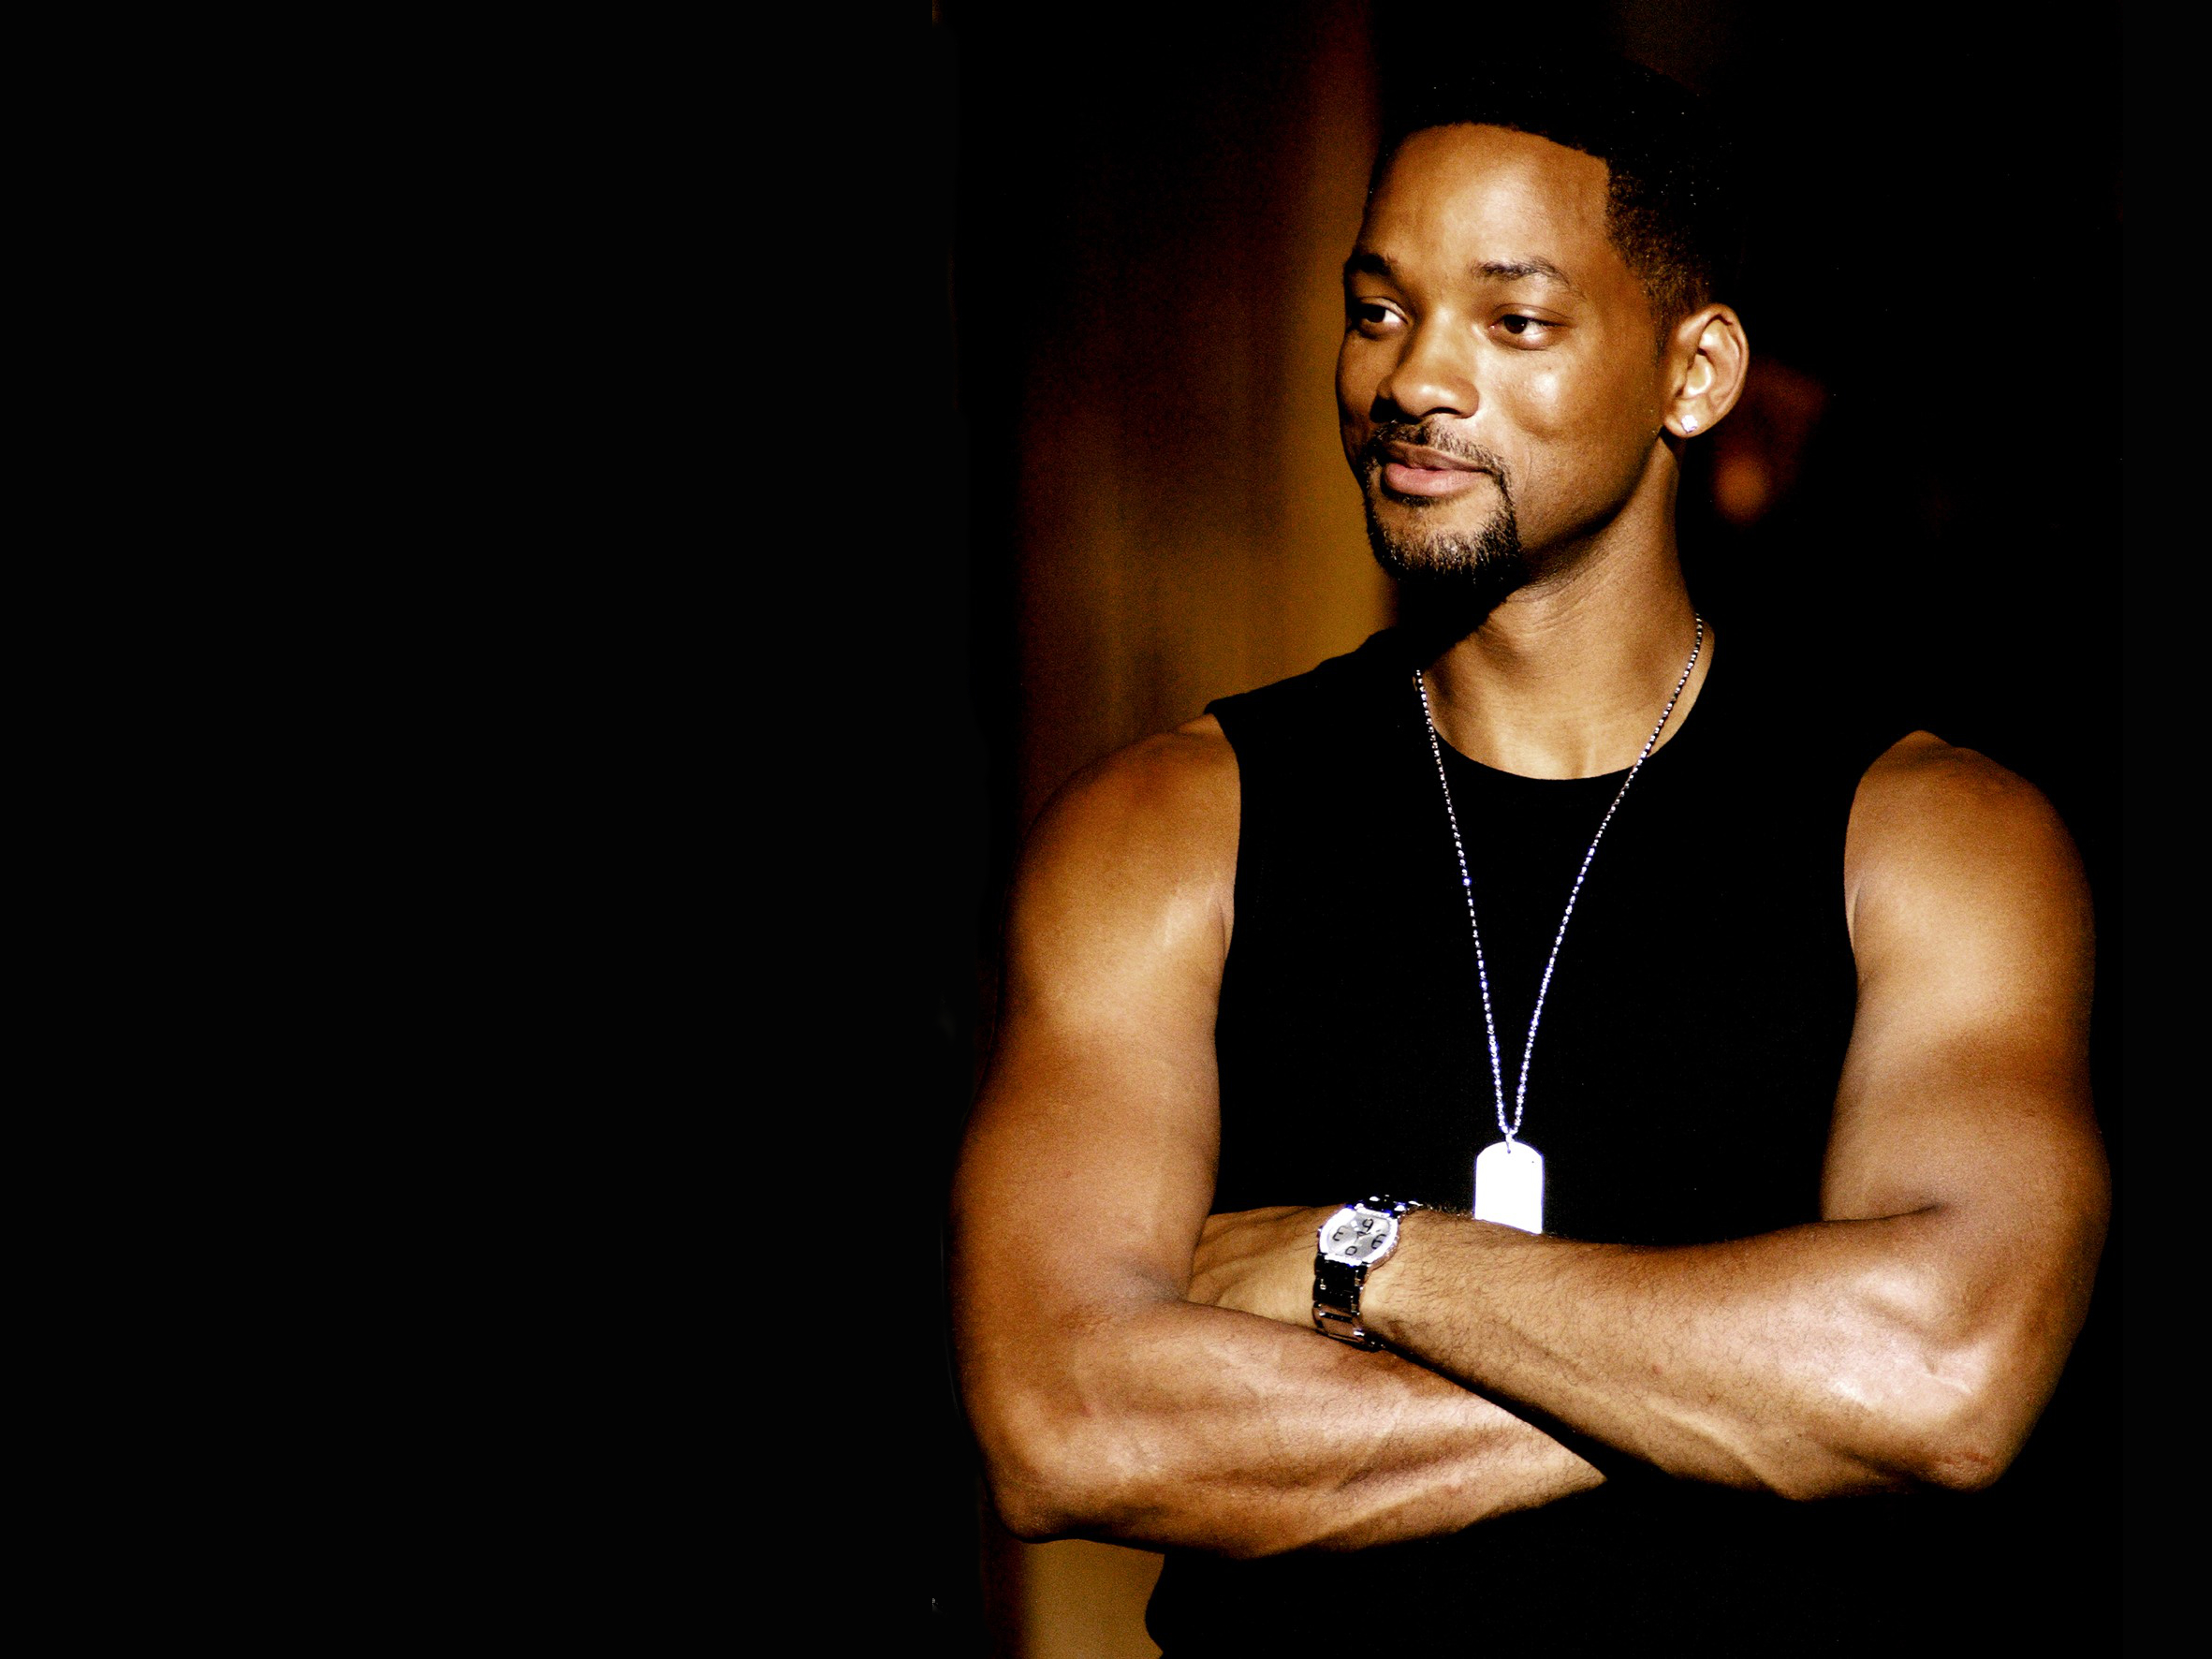 Will Smith HD Wallpaper Background Image 2363x1772 ID66804 2363x1772